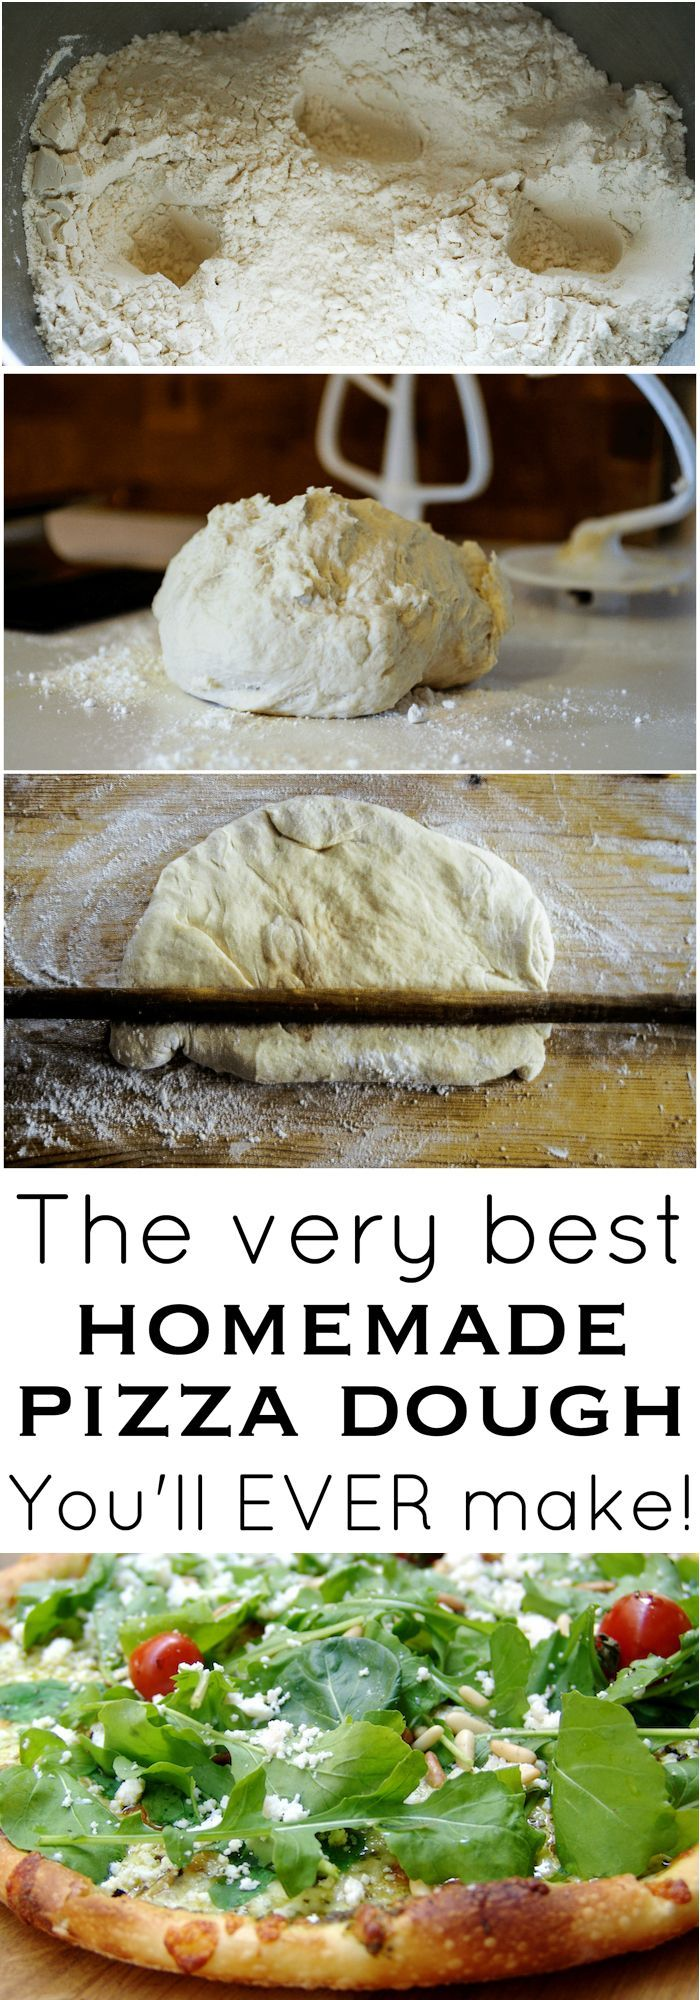 The best homemade pizza dough recipe. It's delicious, easy and makes the perfect pizza crust!